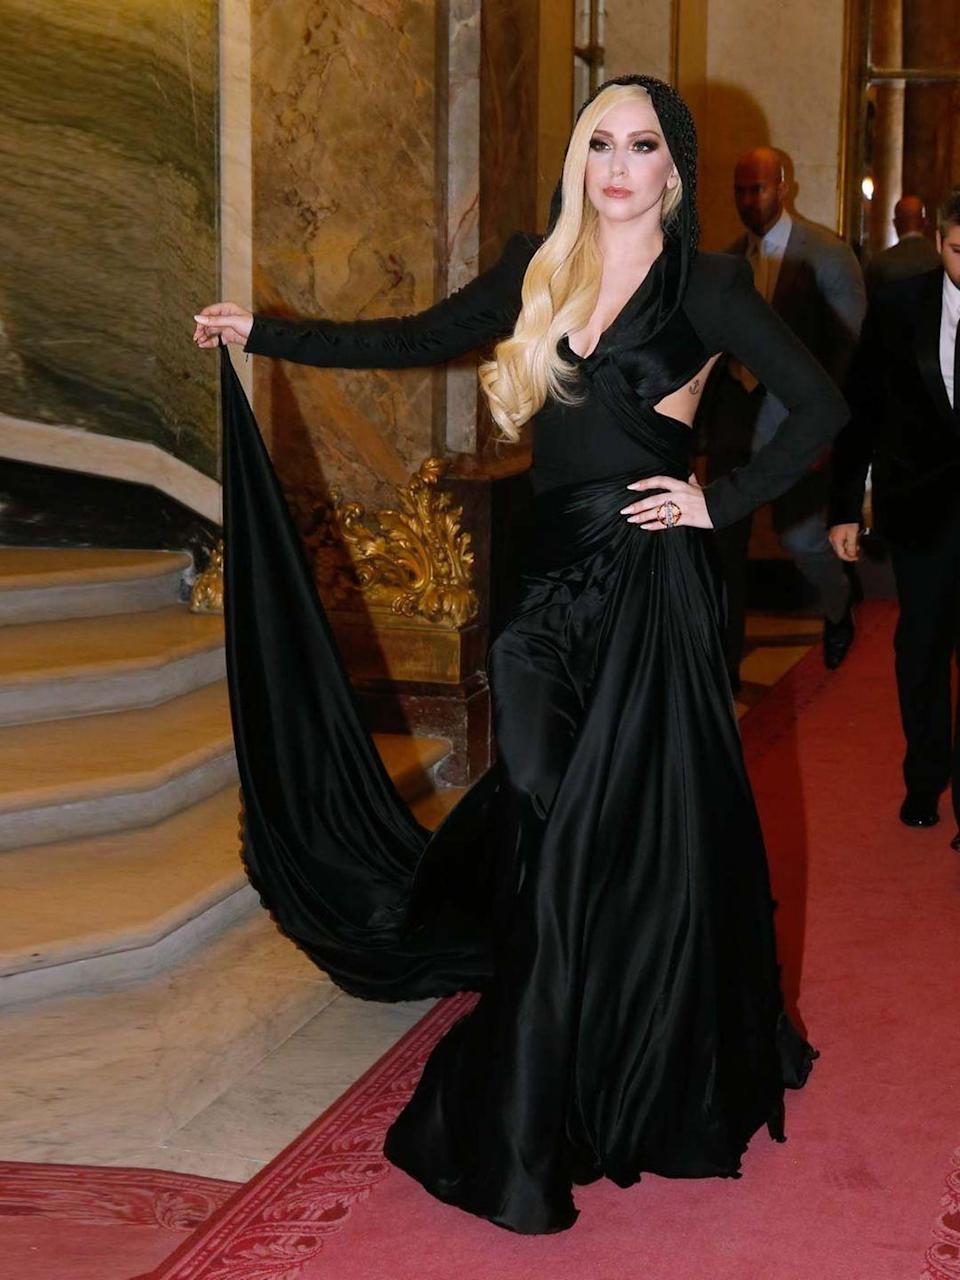 <p>Lady Gaga wearing Atelier Versace to the Versace spring summer 2014 Haute Couture show during Haute Couture fashion week in Paris.</p>